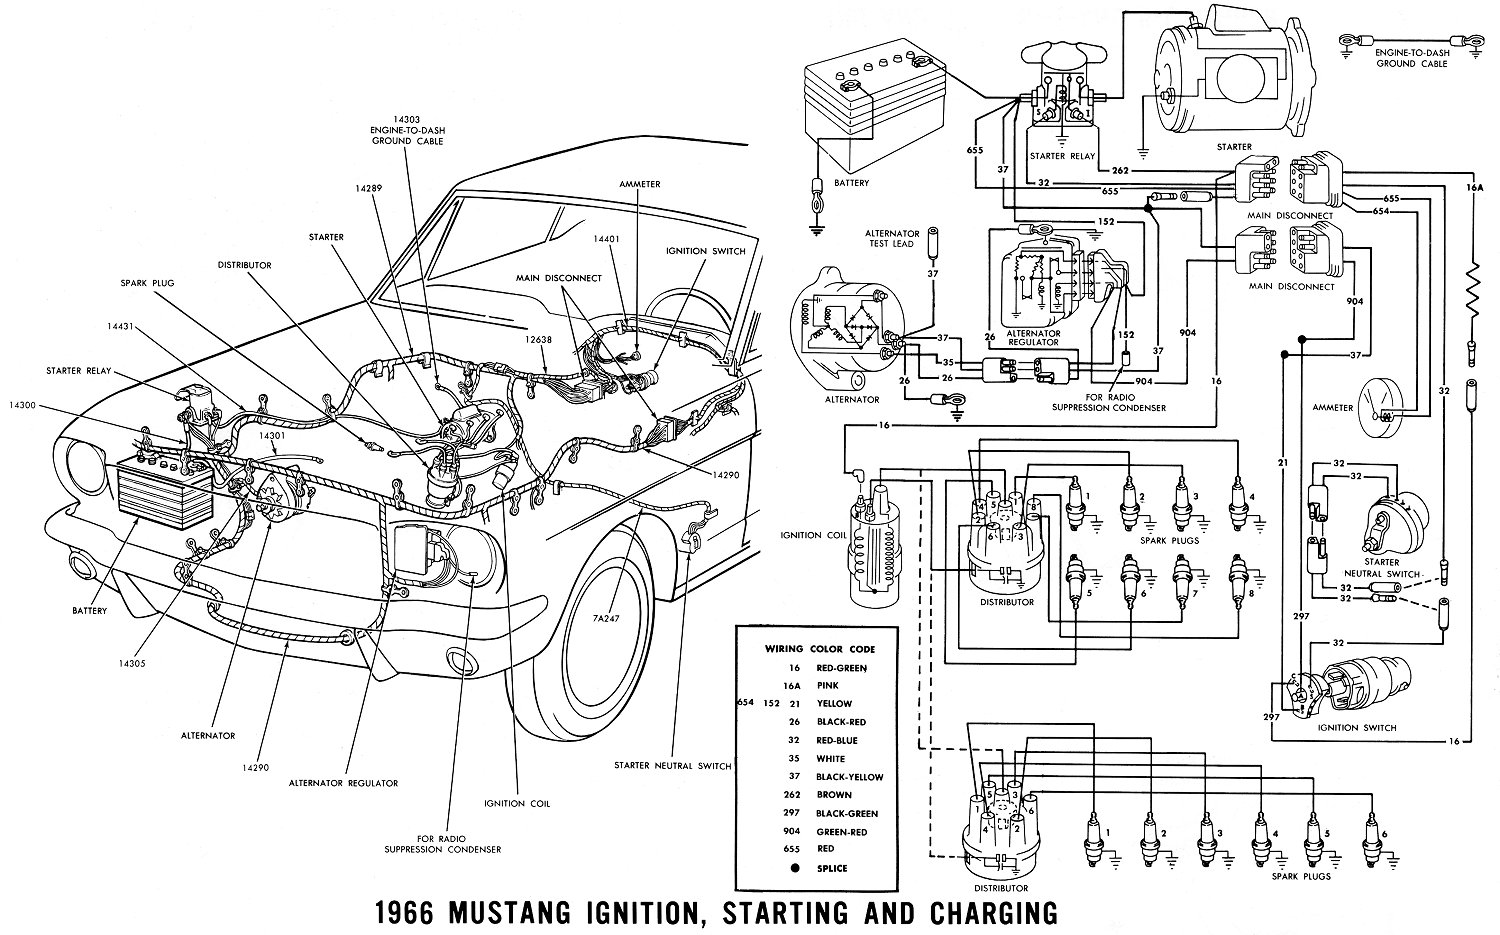 89 Mustang Ignition Wiring Diagram : 34 Wiring Diagram